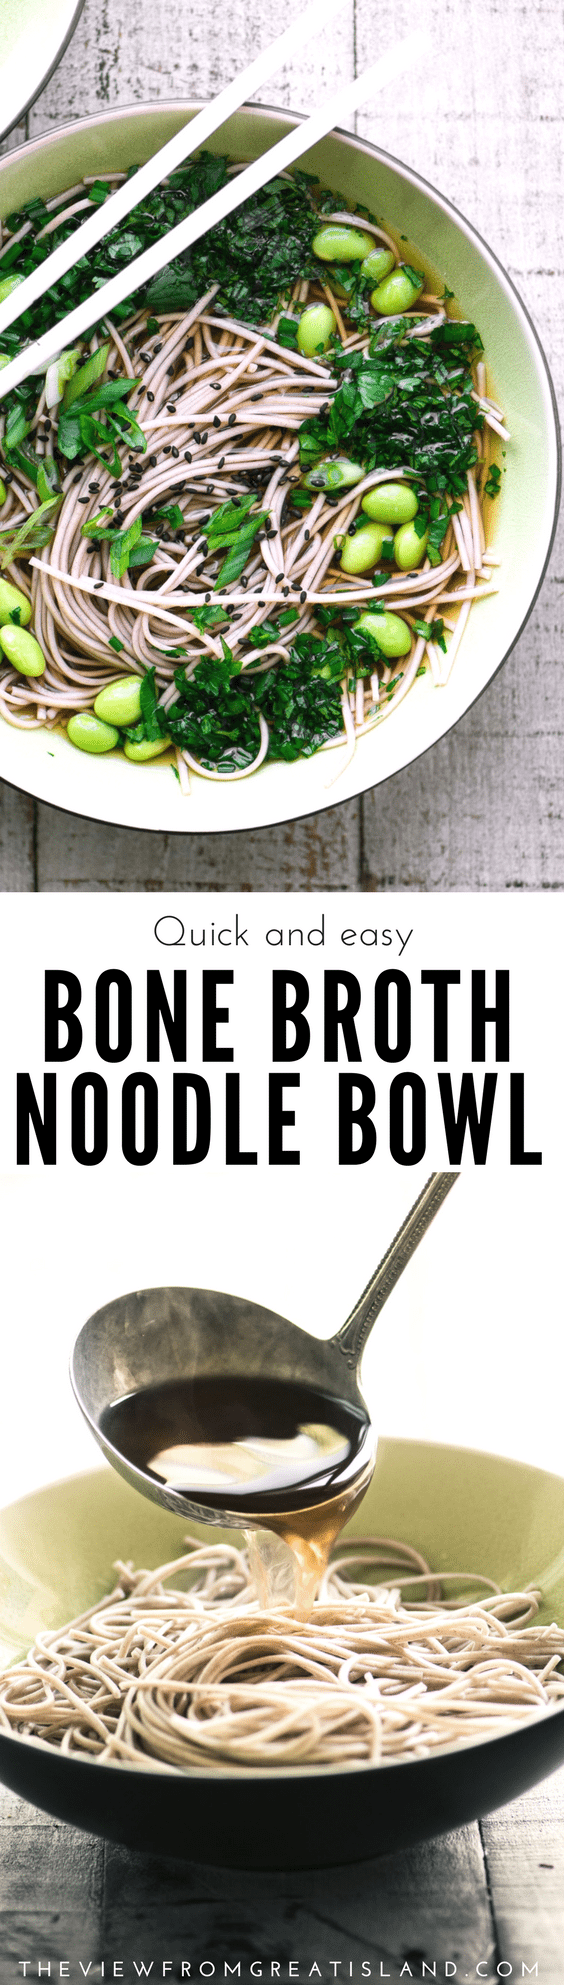 My Easy Bone Broth Noodle Bowl with Herbs is a clean, nutritous, fast answer to that pesky question that comes up at the end of every busy day ~ what's for dinner? #noodlebowl #soup #bonebroth #chickenbroth #dinner #soba #udon #Asian #Japanese #edamame #30minutedinner #noodlesoup #buddhabowl #bowl #healthy